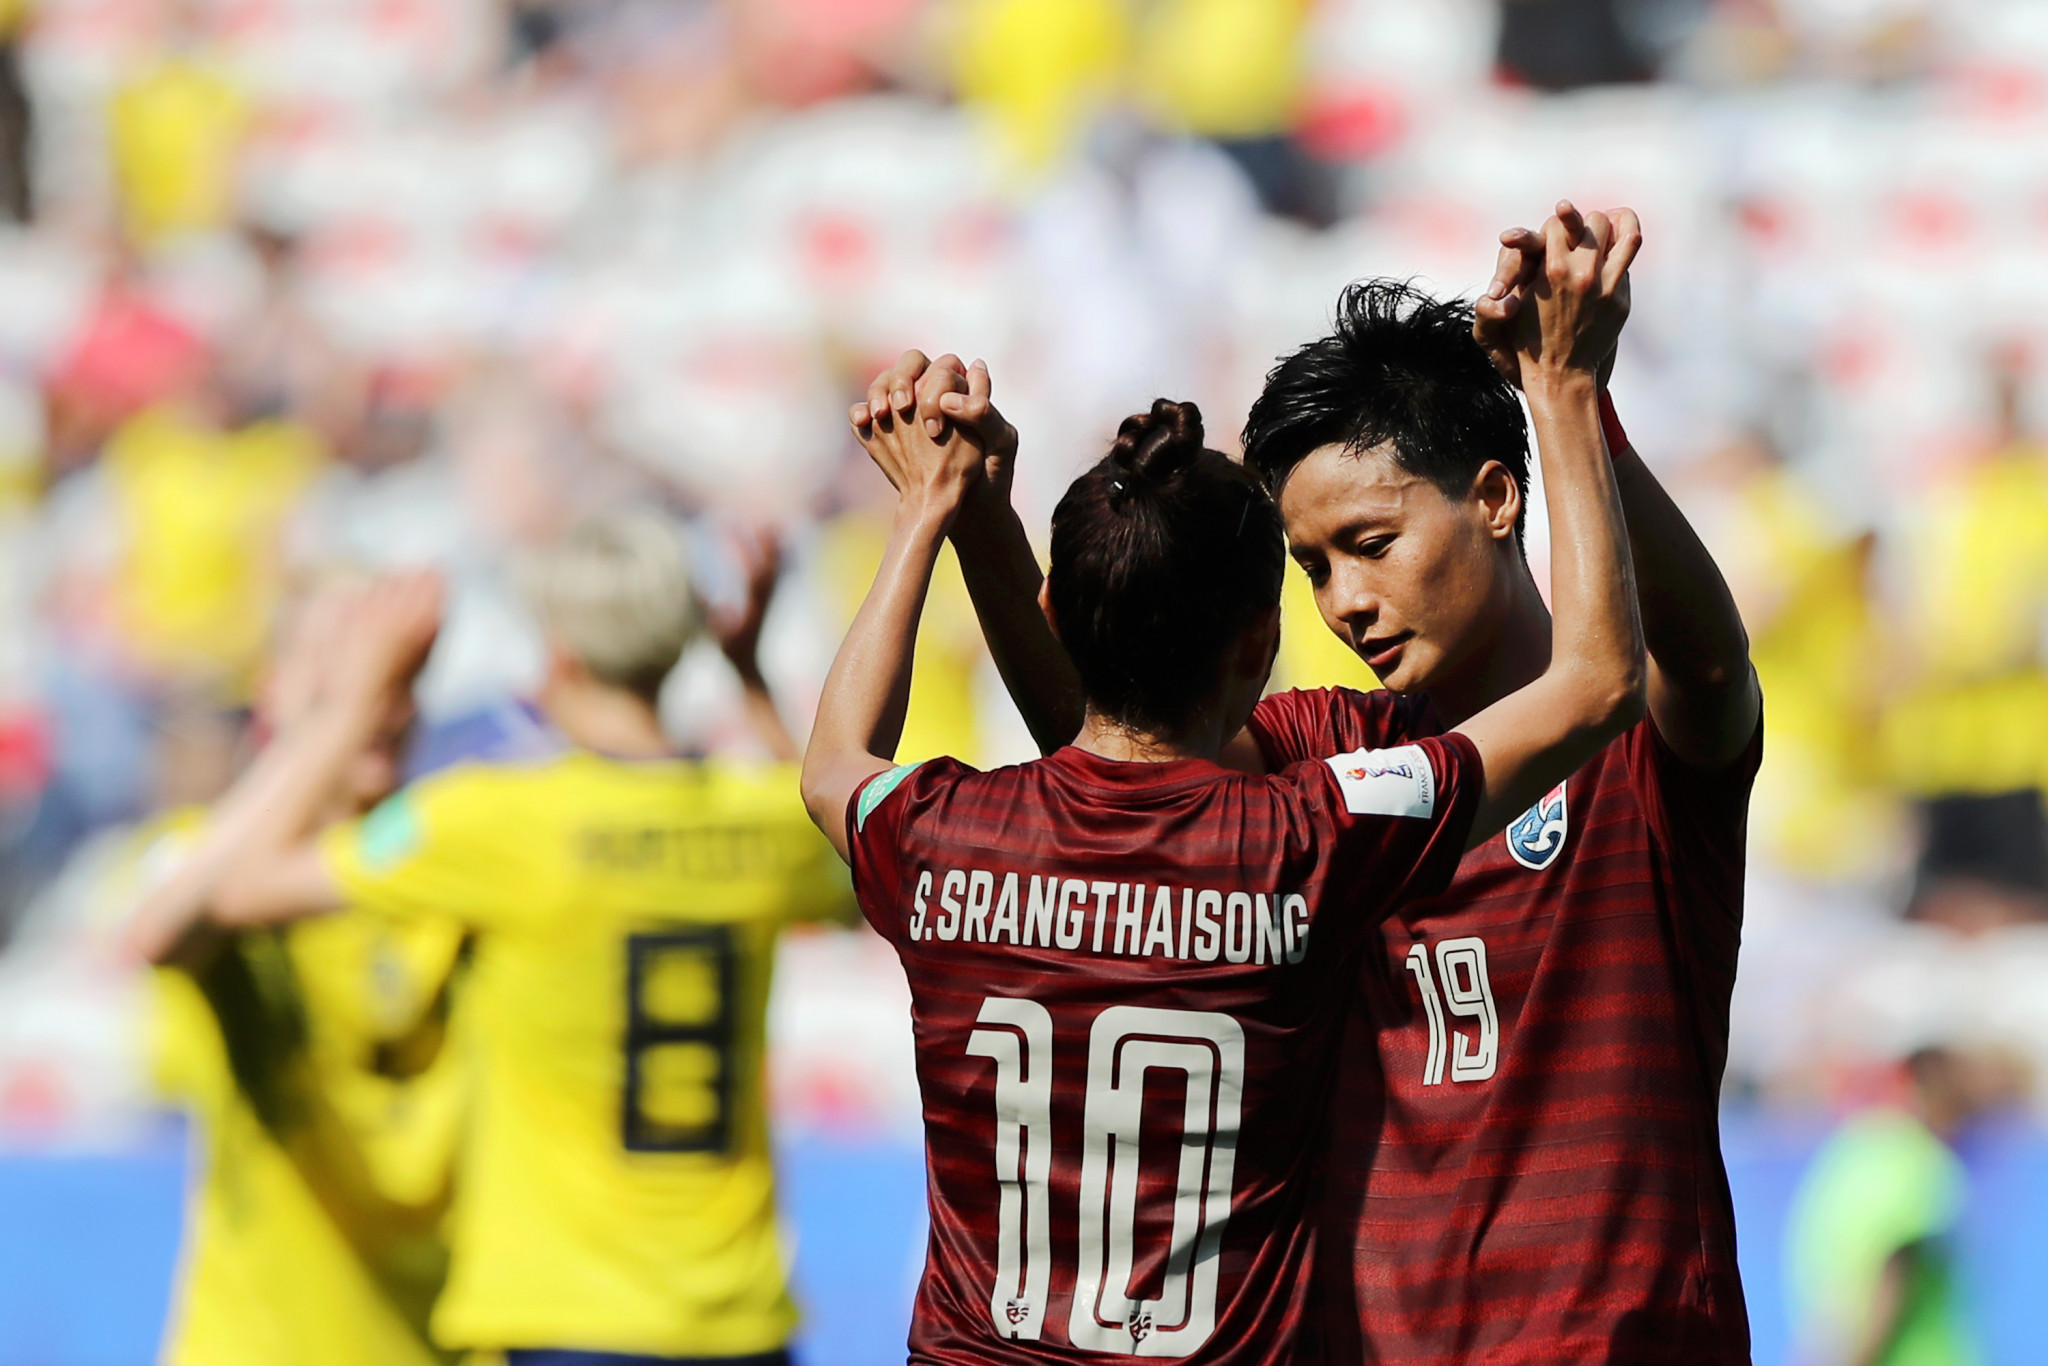 Sunisa Srangthaisong and Pitsamai Sornsai of Thailand react after defeat to Sweden ©Getty Images